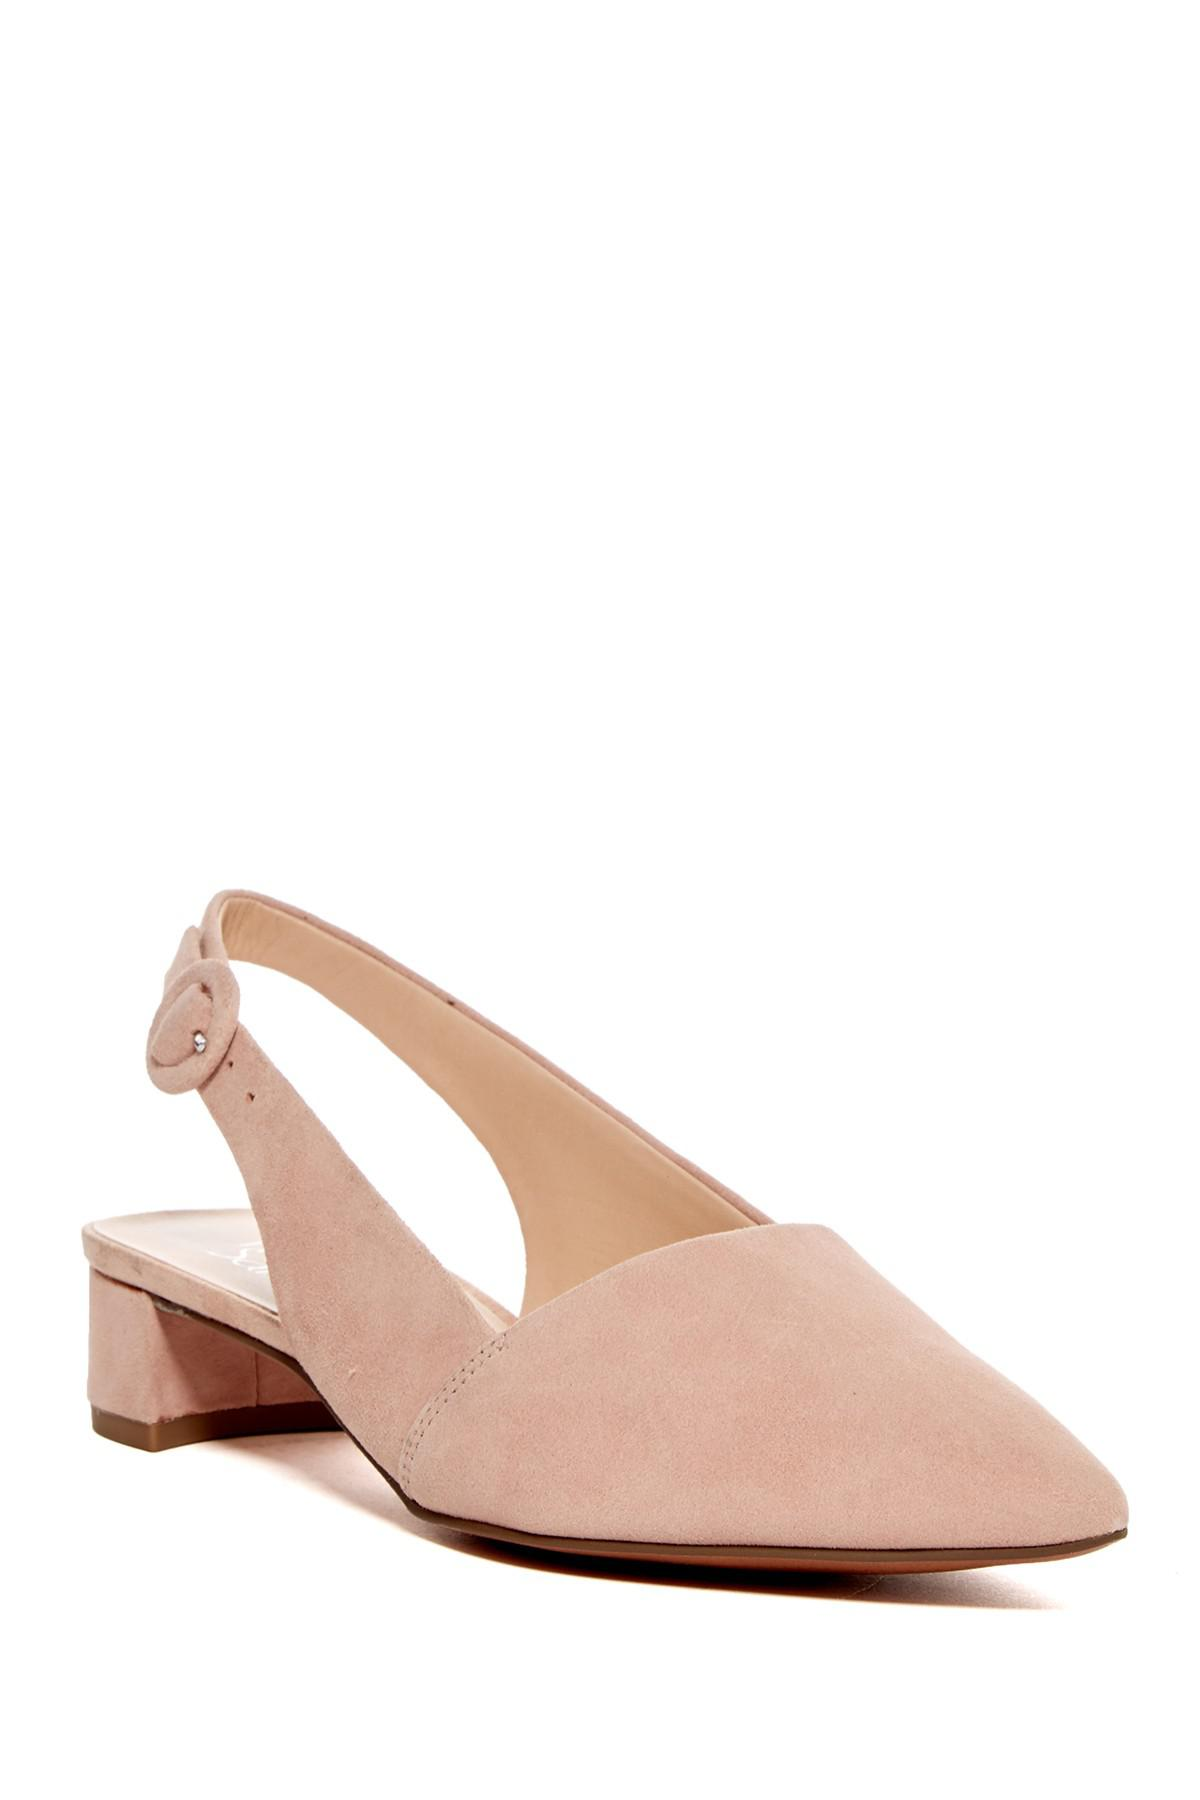 Burberry Shoes For Women Pump